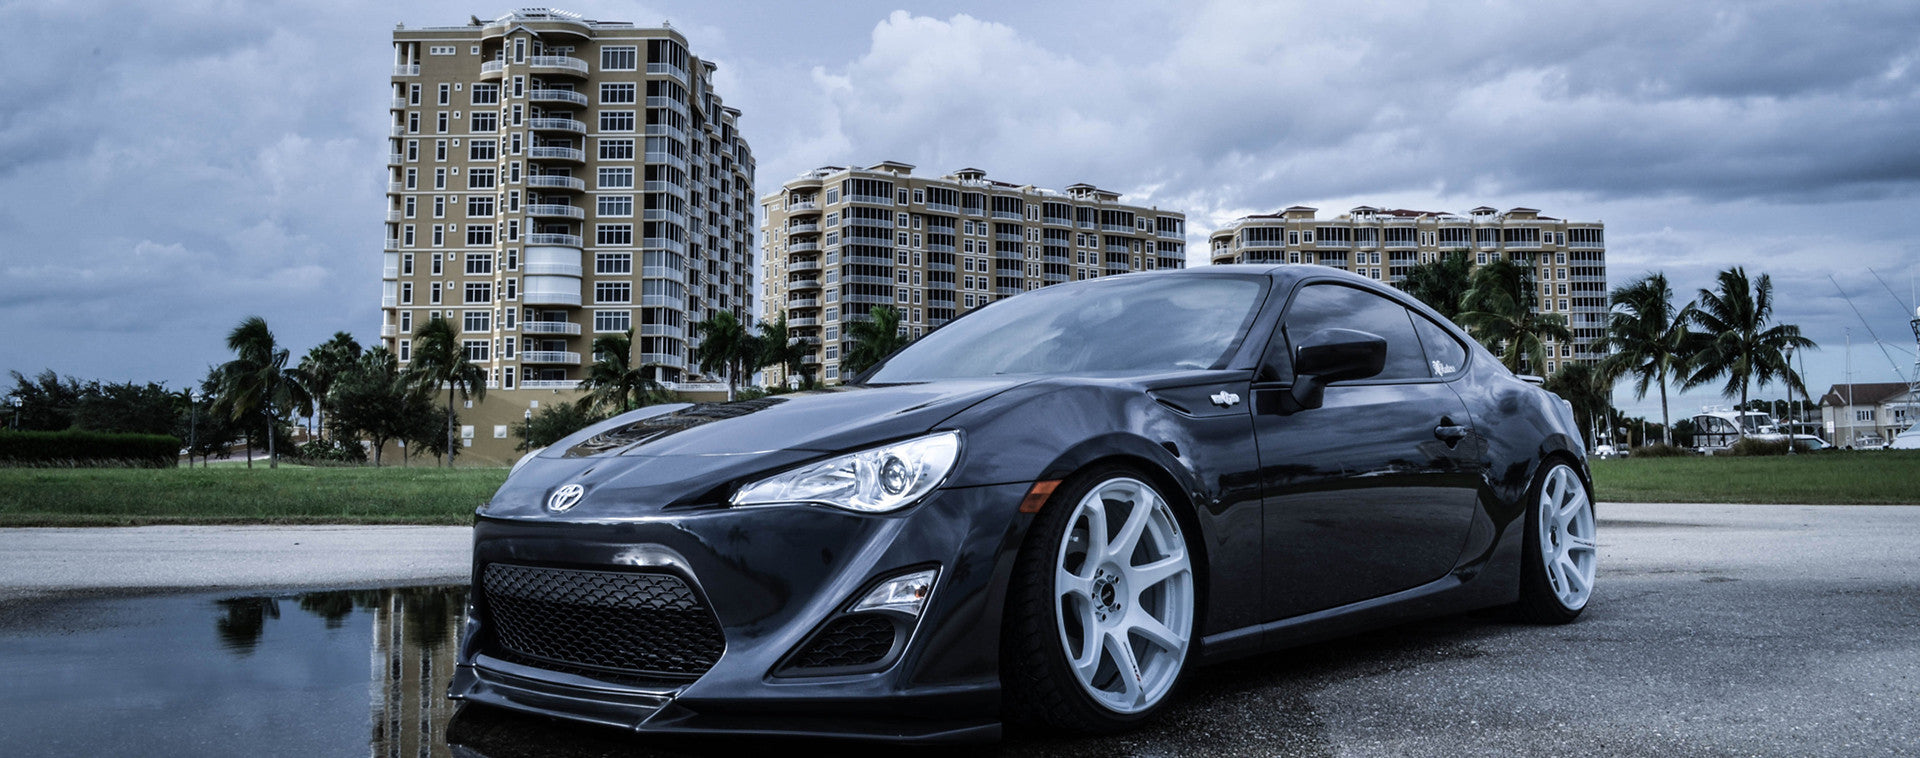 Scion FR-S / Subaru BRZ / FT-86